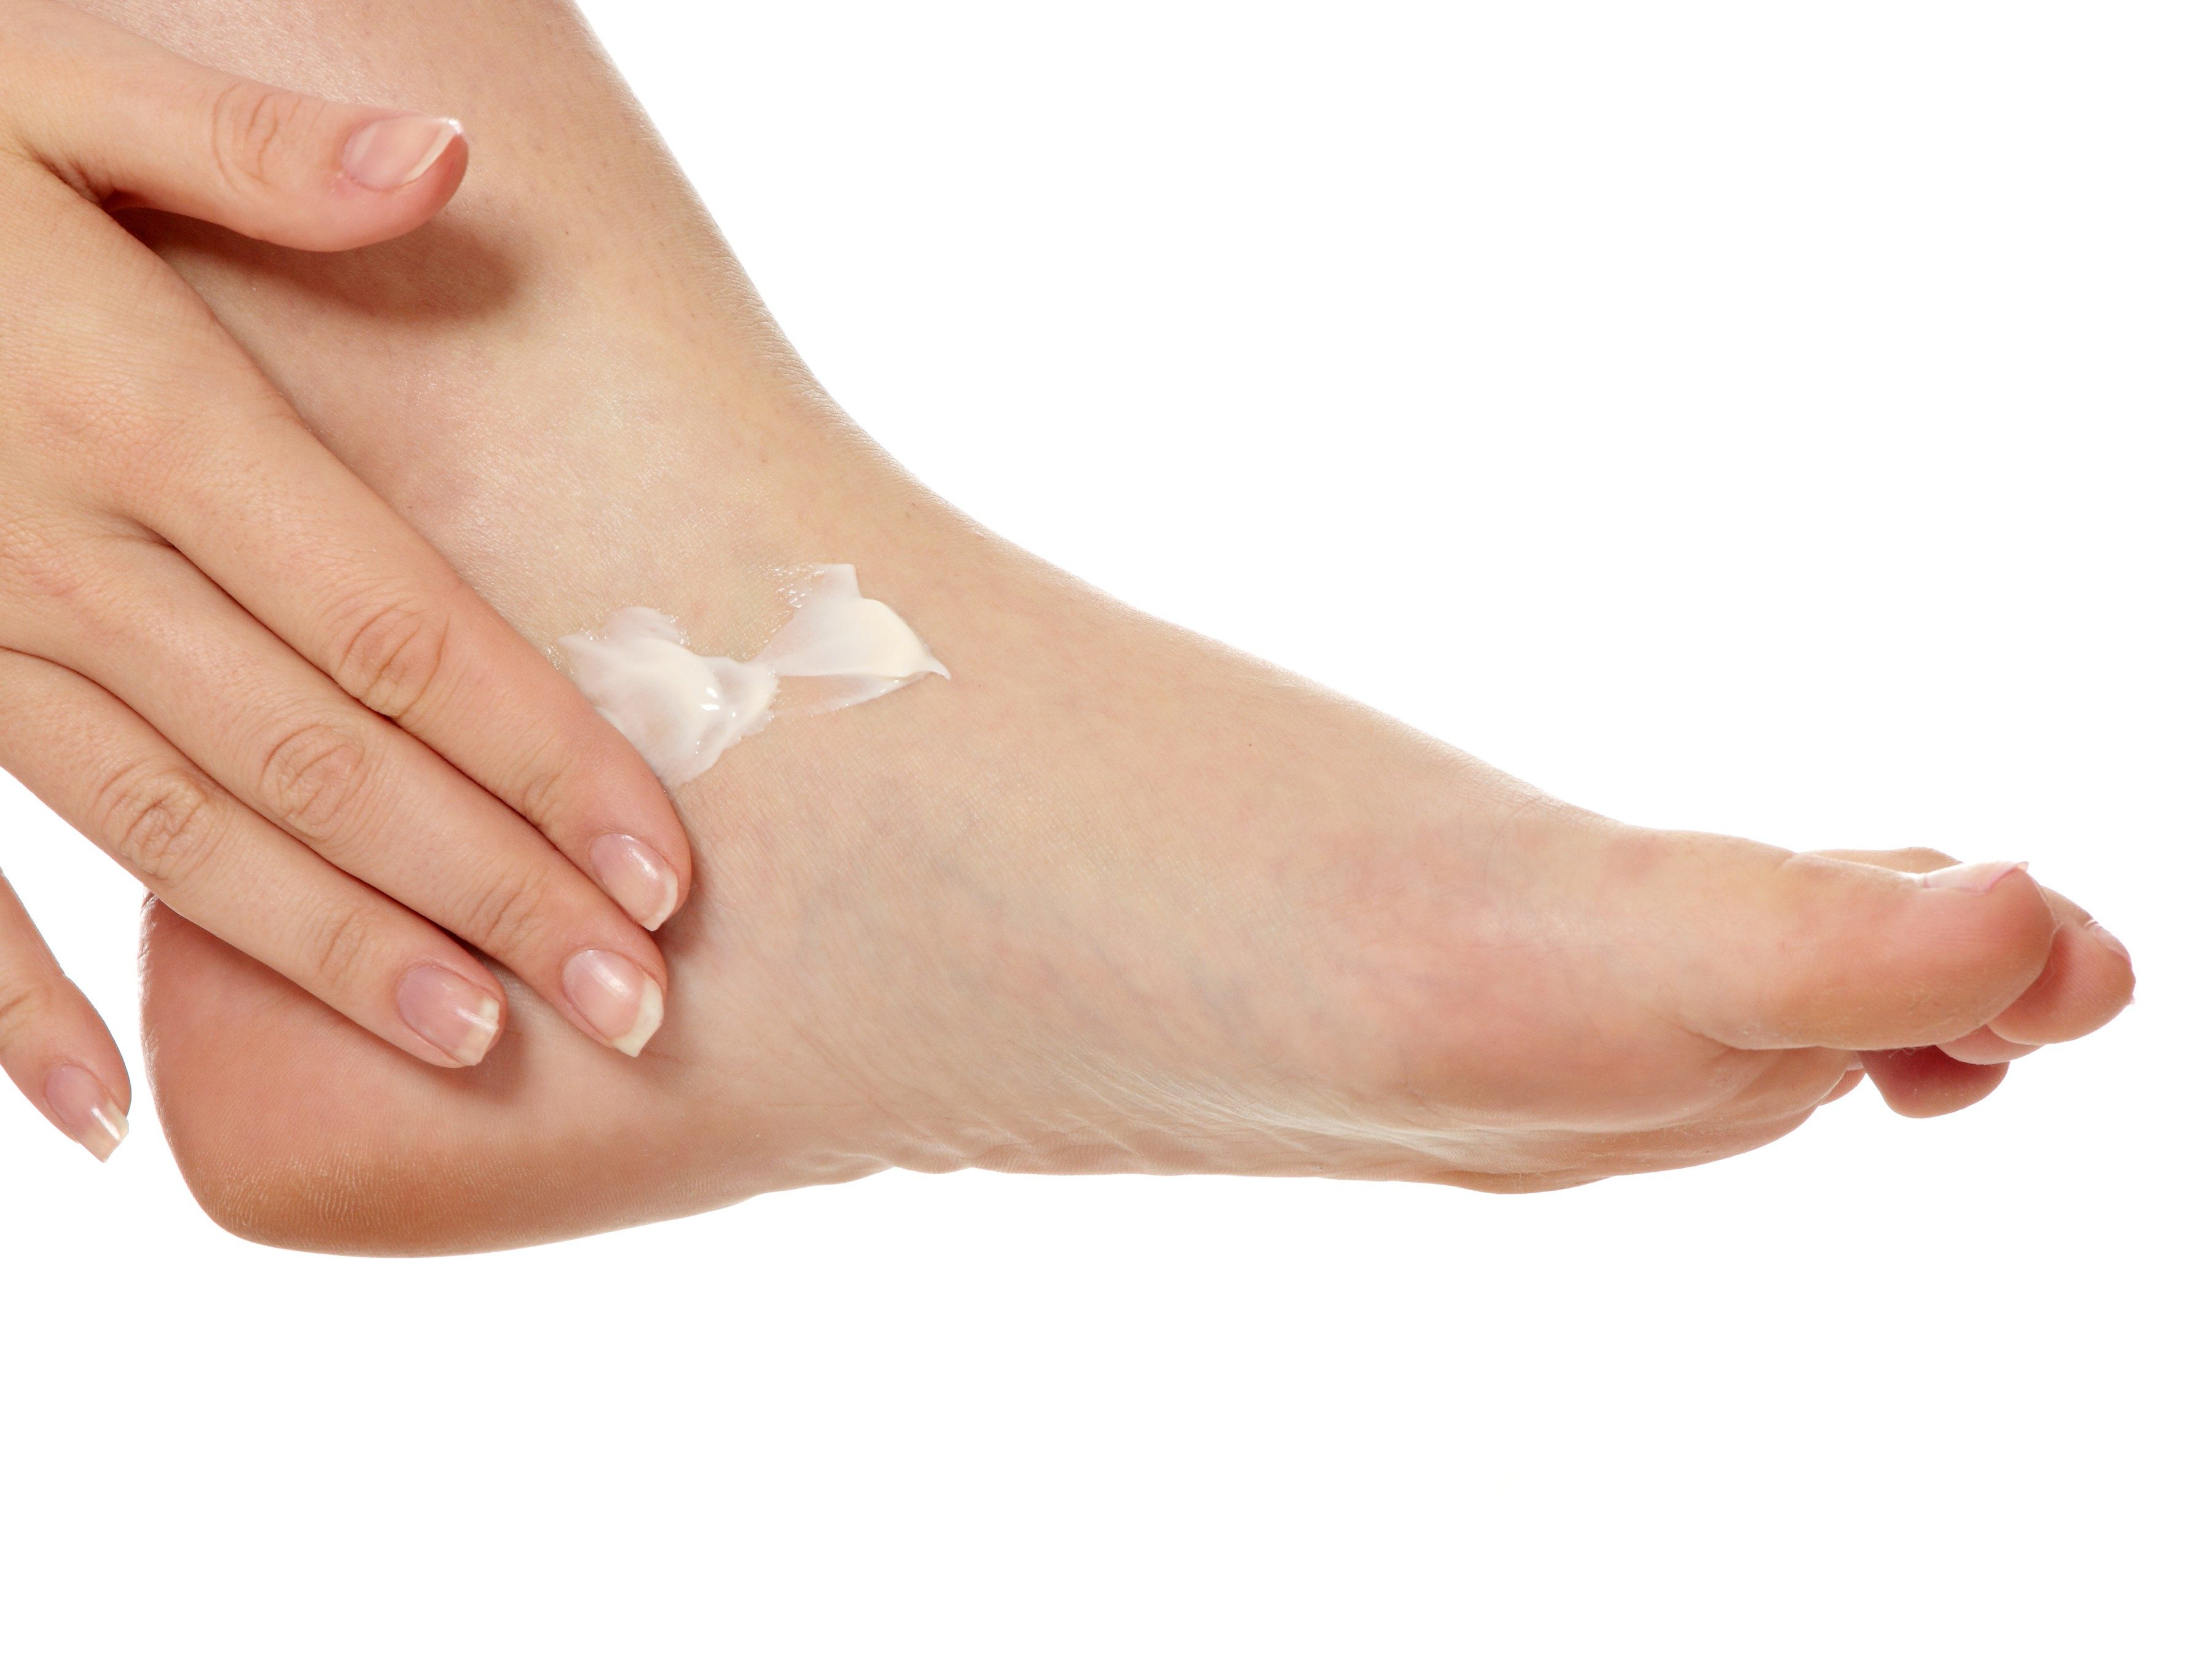 11 Ways to Treat and Cure Athlete's Foot